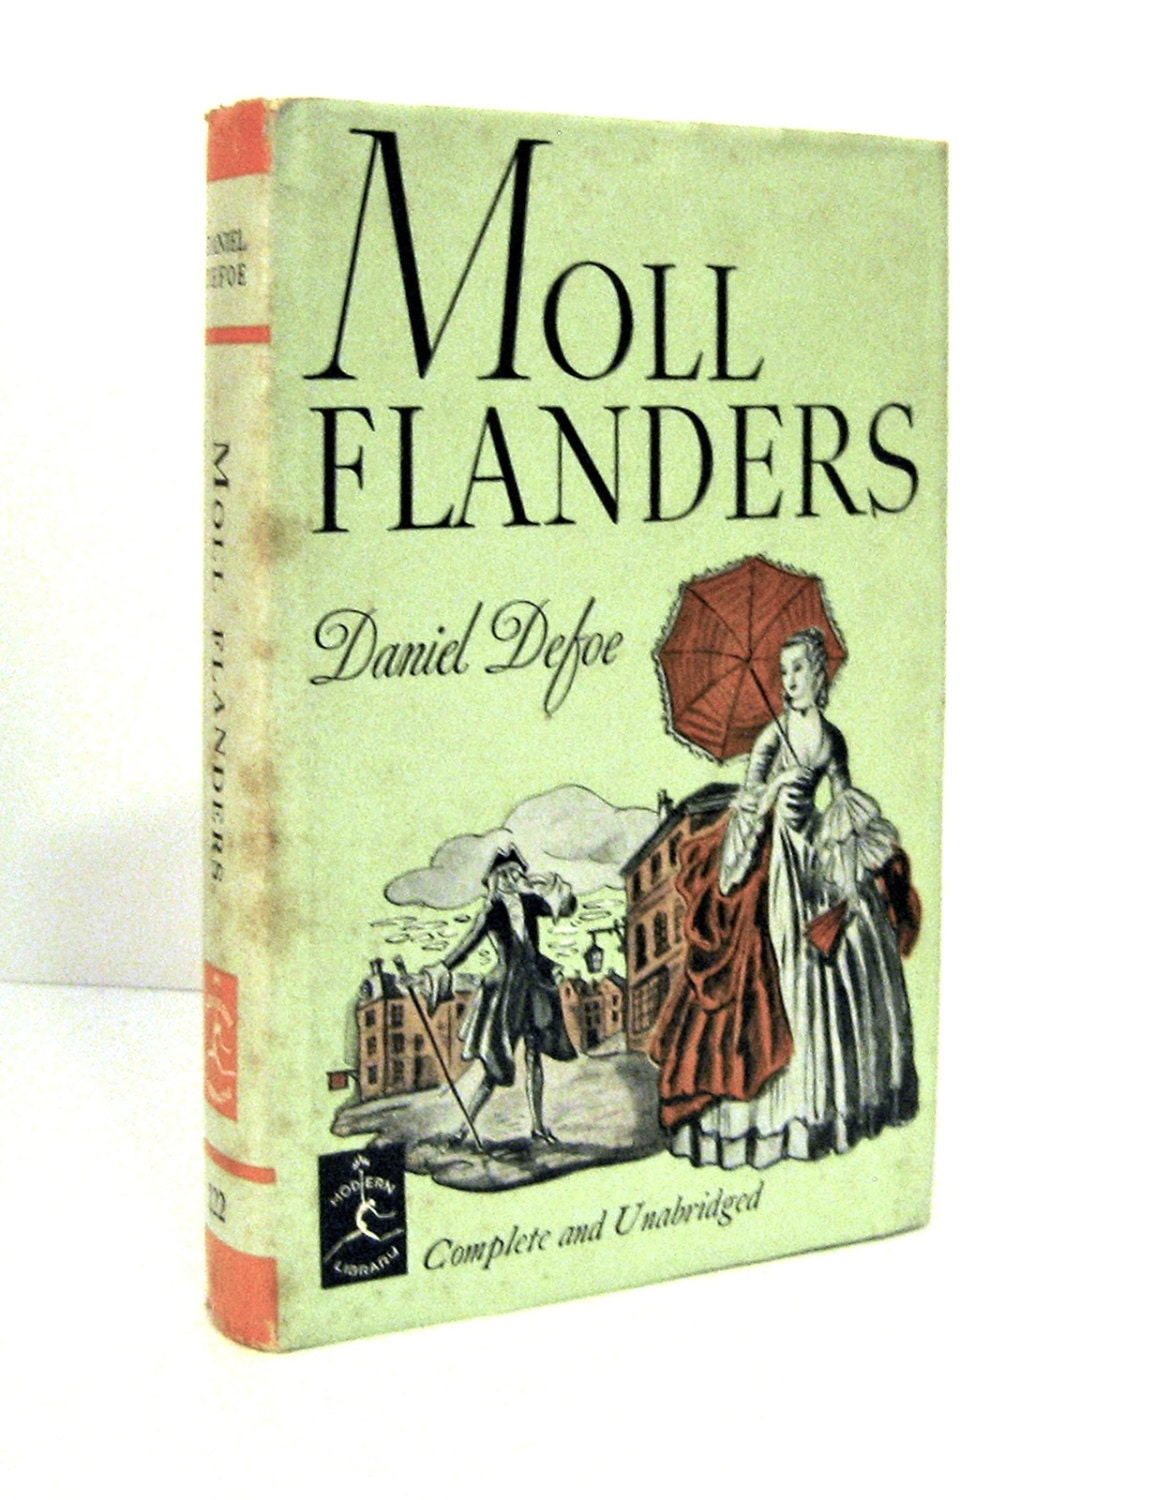 morality moll flanders Subject: morality and religion in defoe type: essay language: english author: monte karlo size: 9 кб subject: a free essays title: 'morality and religion in defoe s writing essay research paper morality and religion in defoe s writing robinson crusoe and moll flanders daniel defoe was born in daniel received a very good education as his.